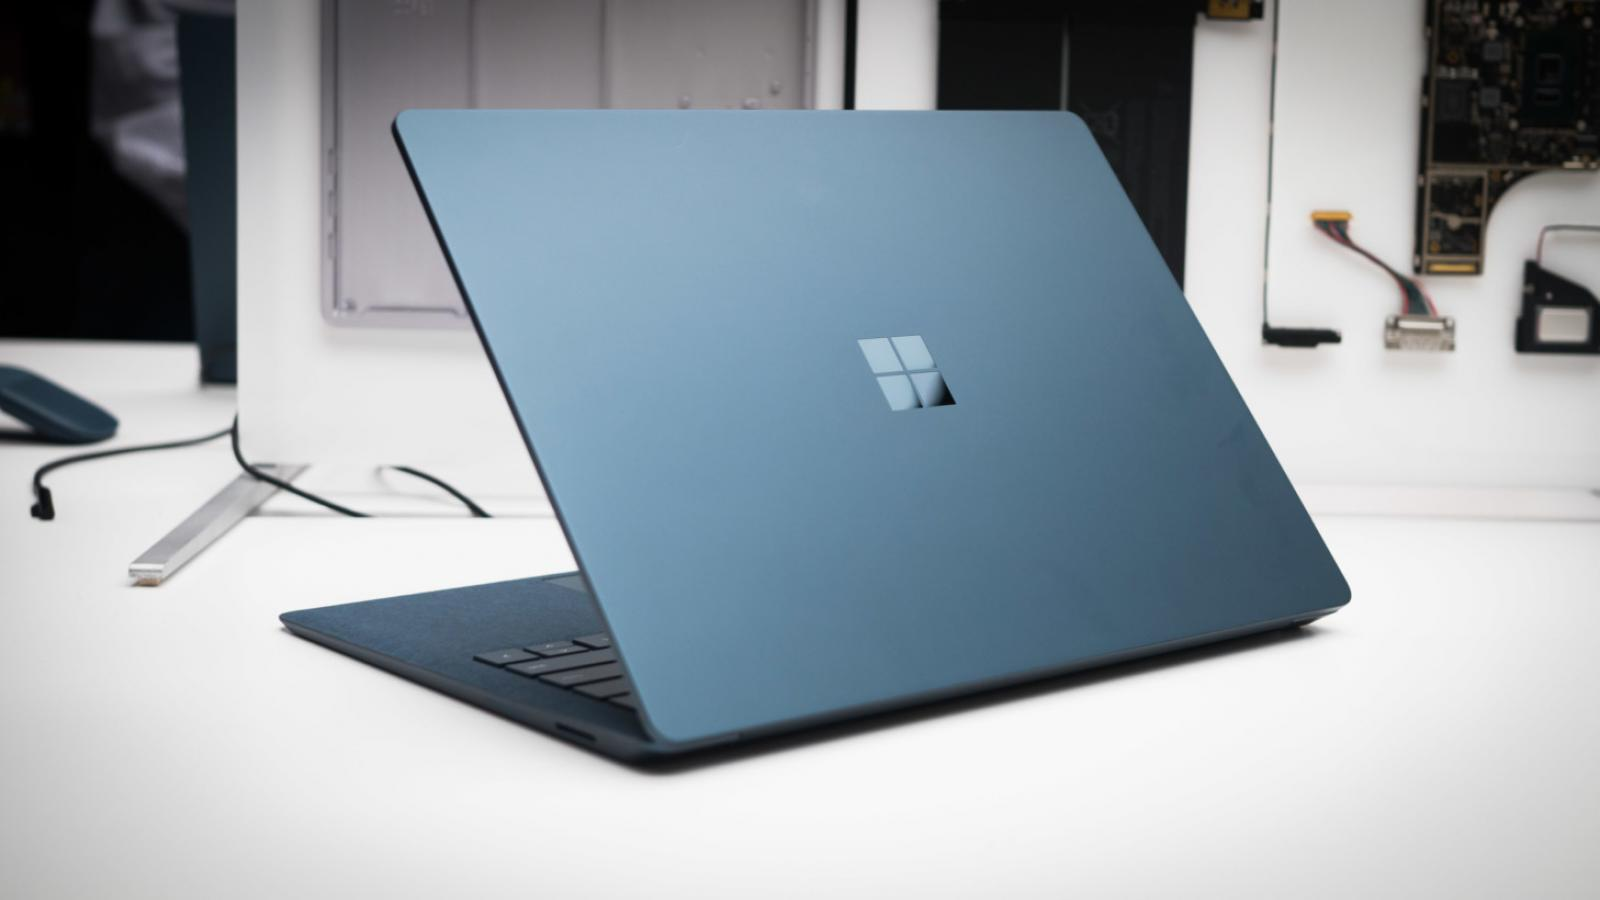 Weekly Roundup: Surface Laptop Hands-On, YouTube New Slick Design and More